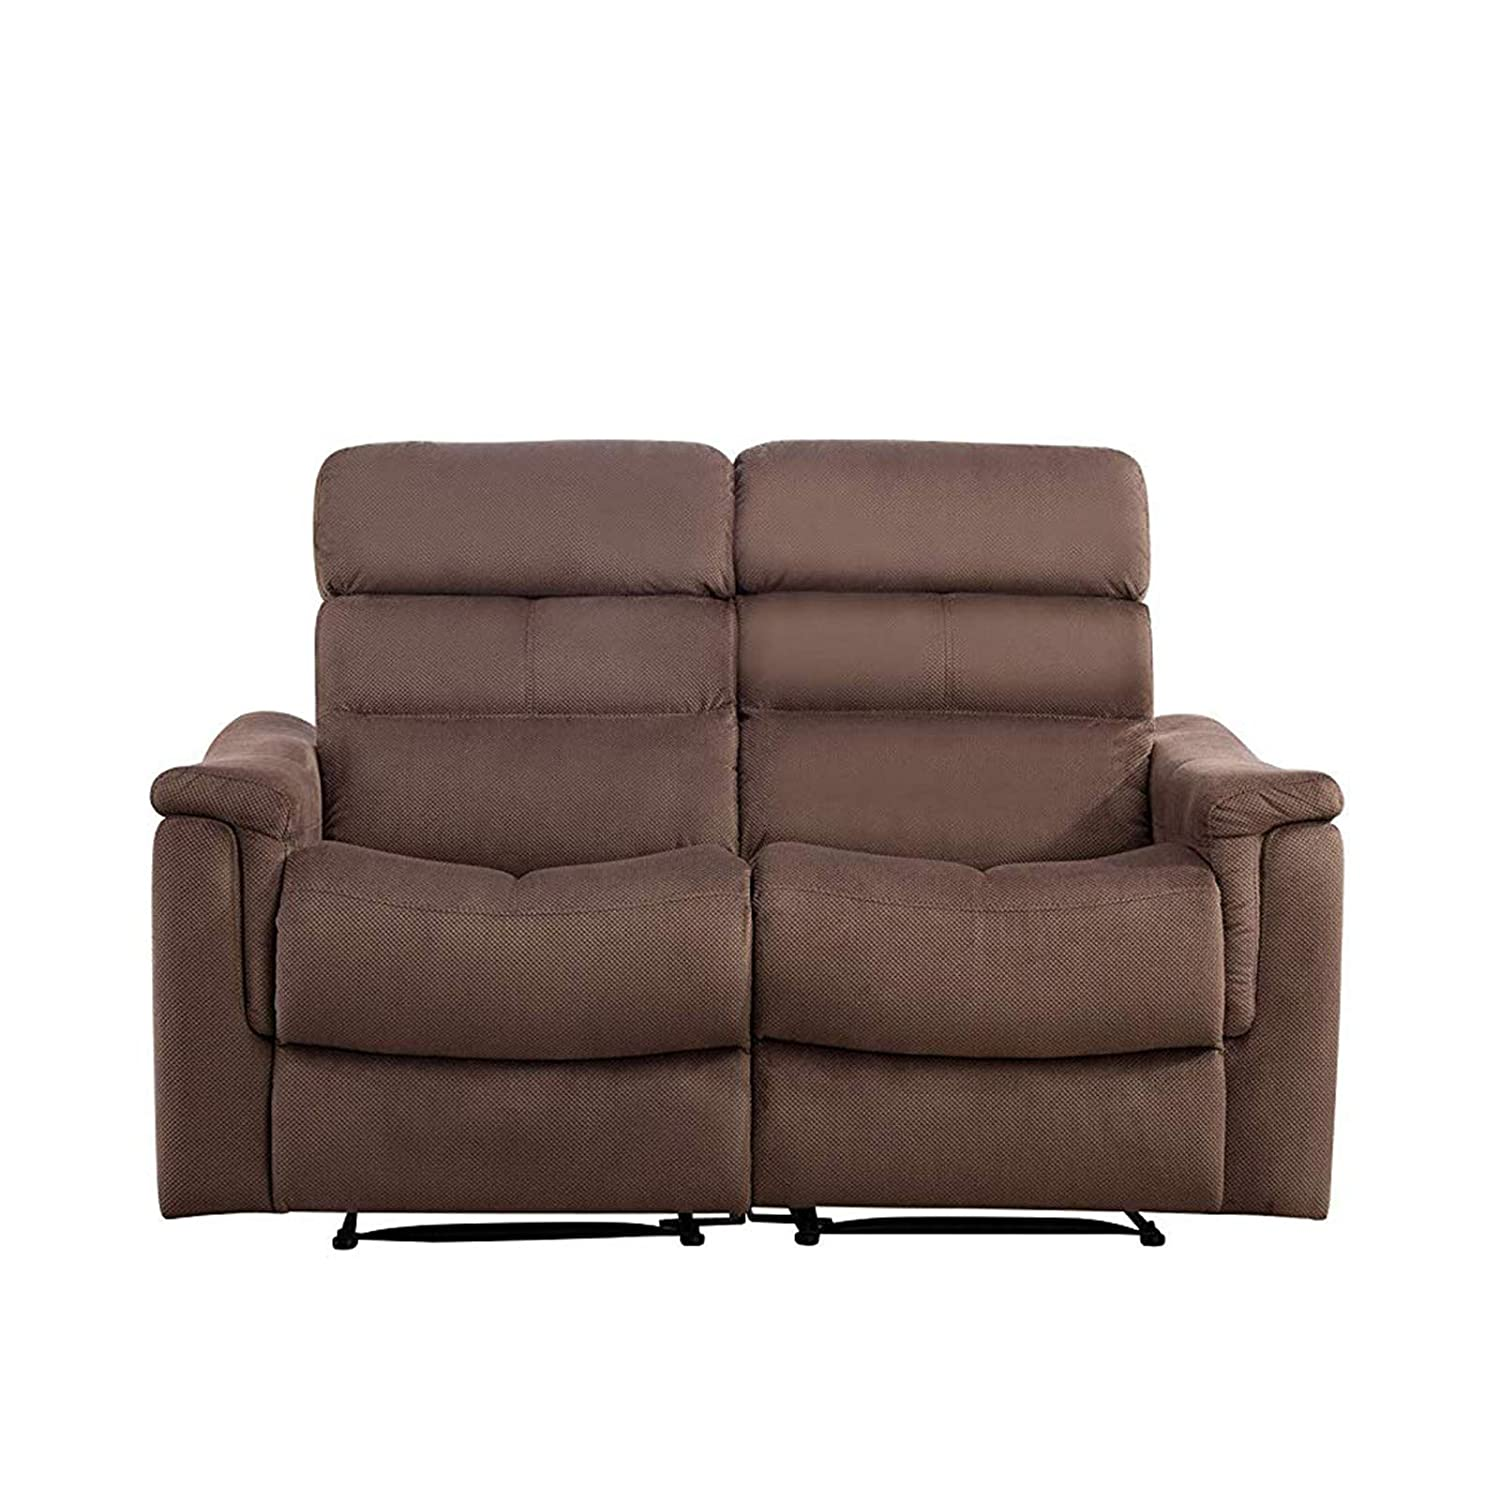 Magnificent Mecor Recliner Loveseat Manual Reclining Sofa Couch Double Recliner Chair Fabric Home Theater Seating With Reclining Motion 2 Seats Chocolate Ocoug Best Dining Table And Chair Ideas Images Ocougorg